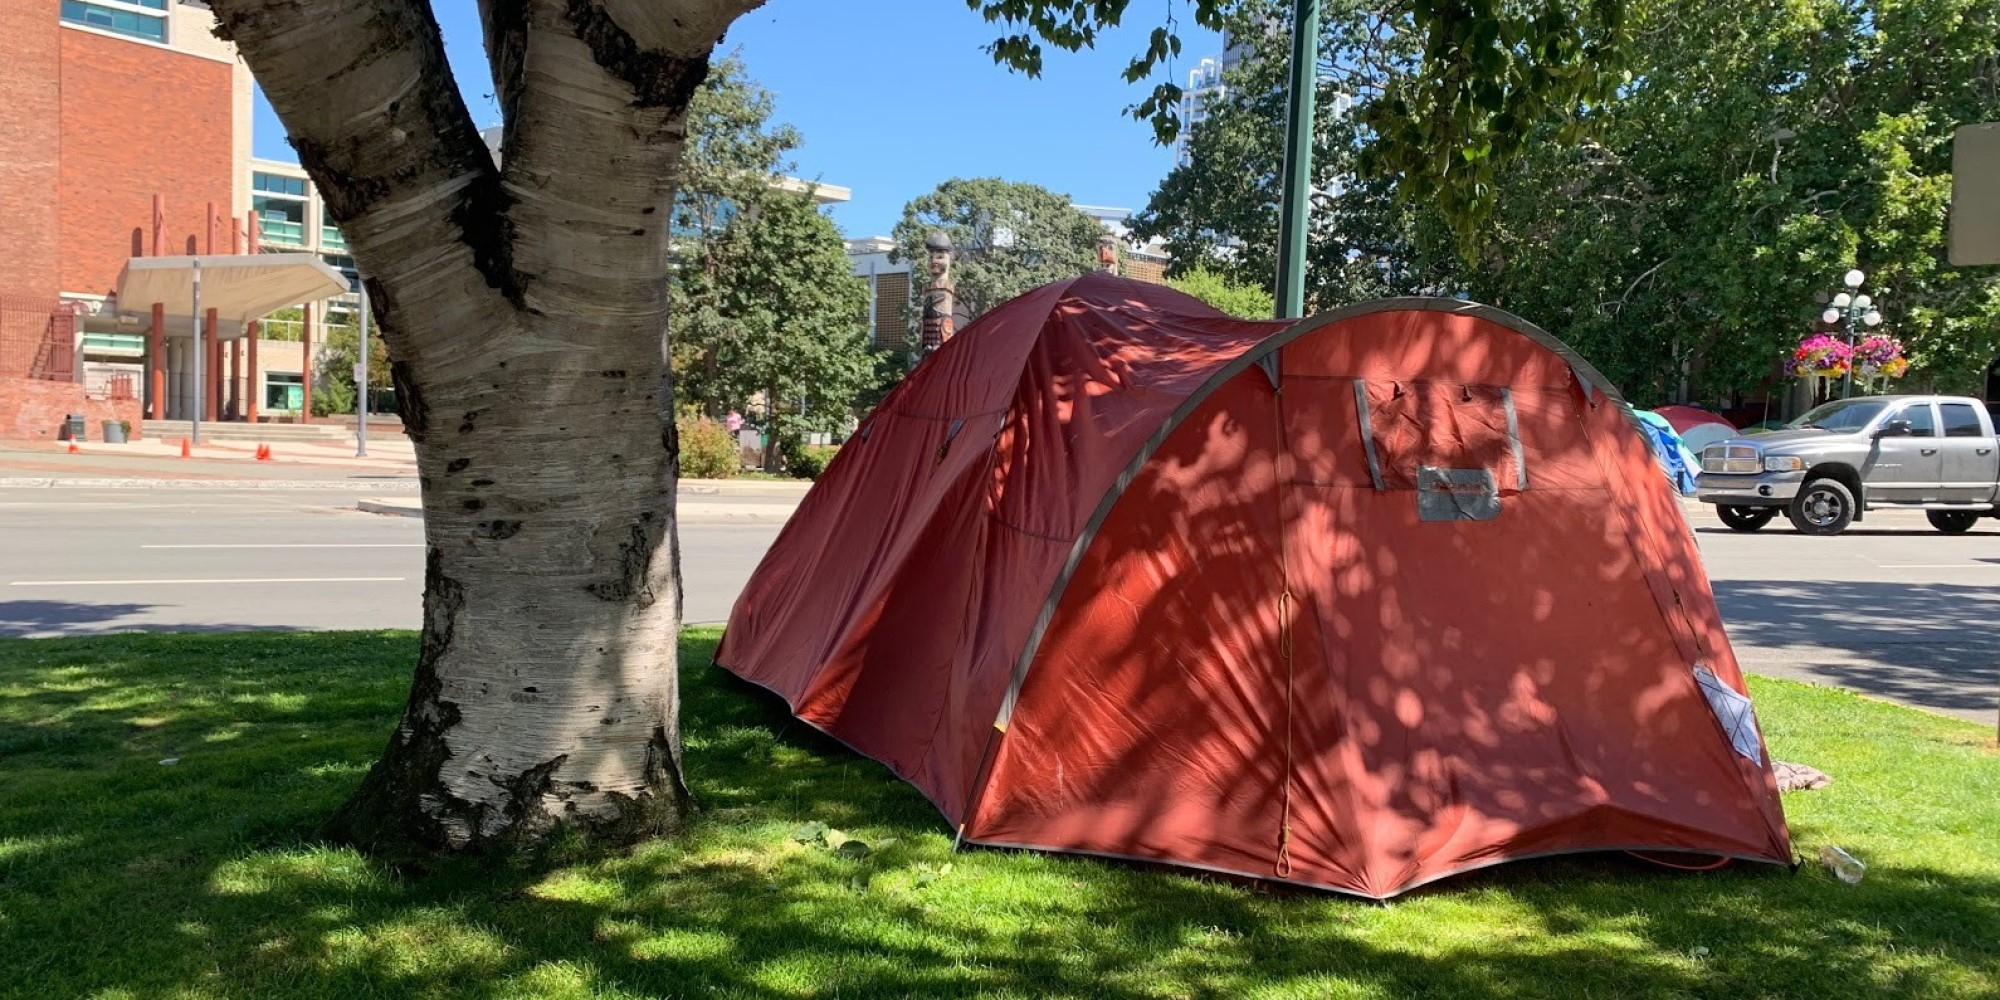 Where are Victoria's homeless coming from?